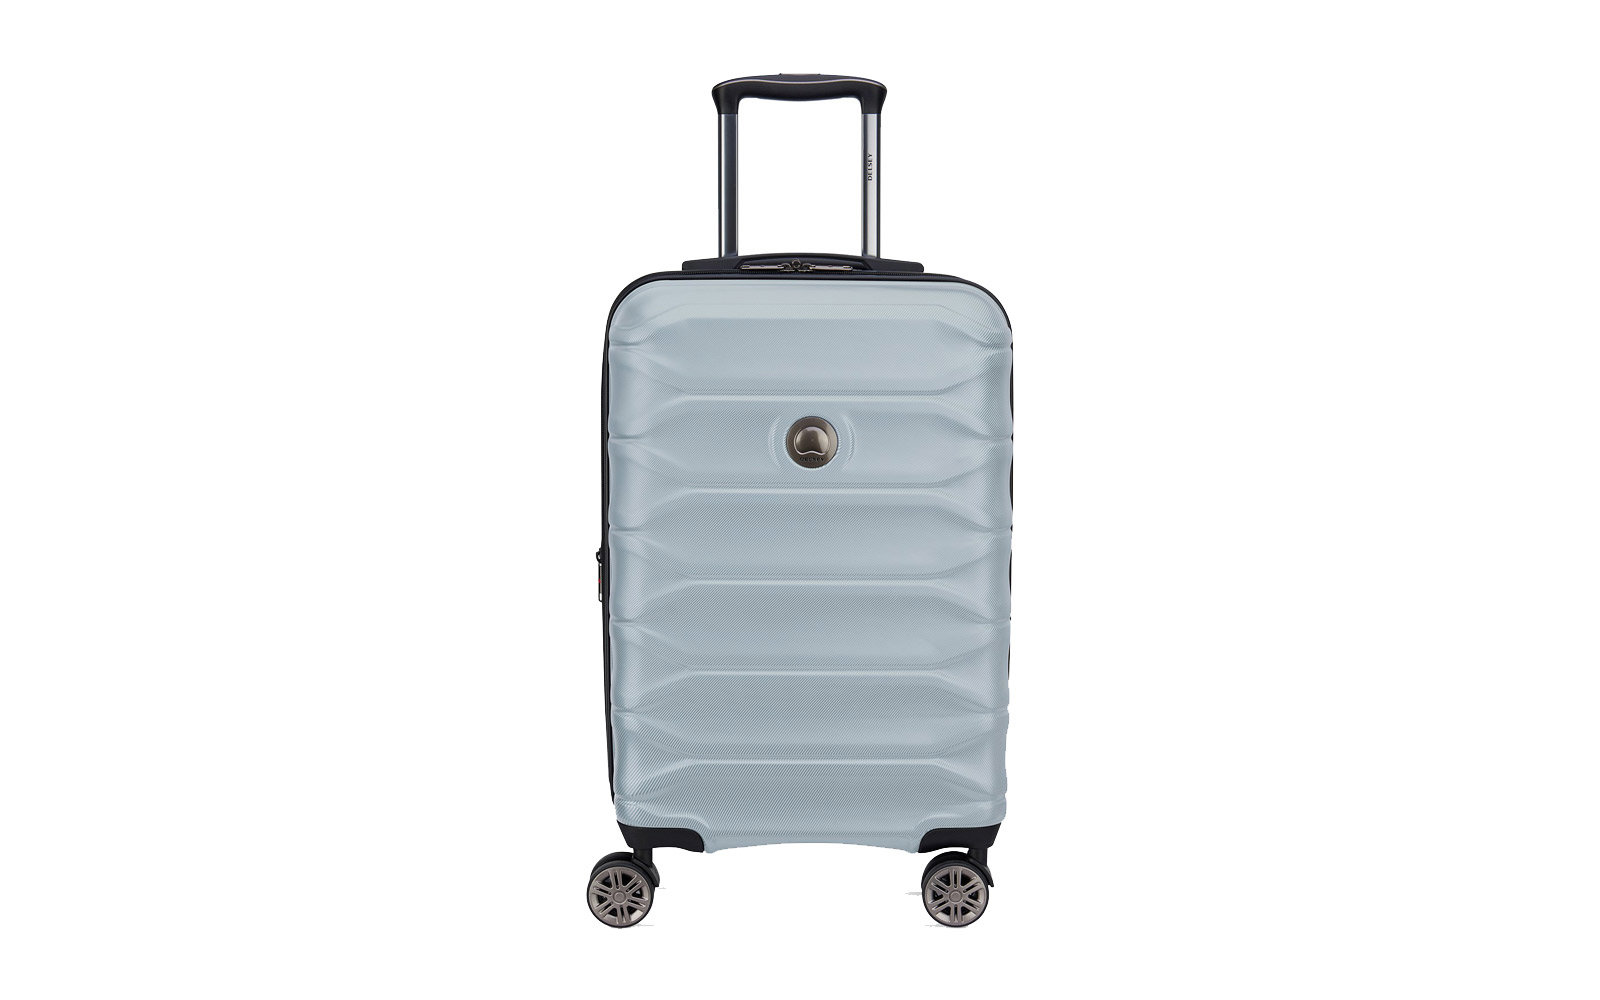 delsey black friday luggage deals 2018